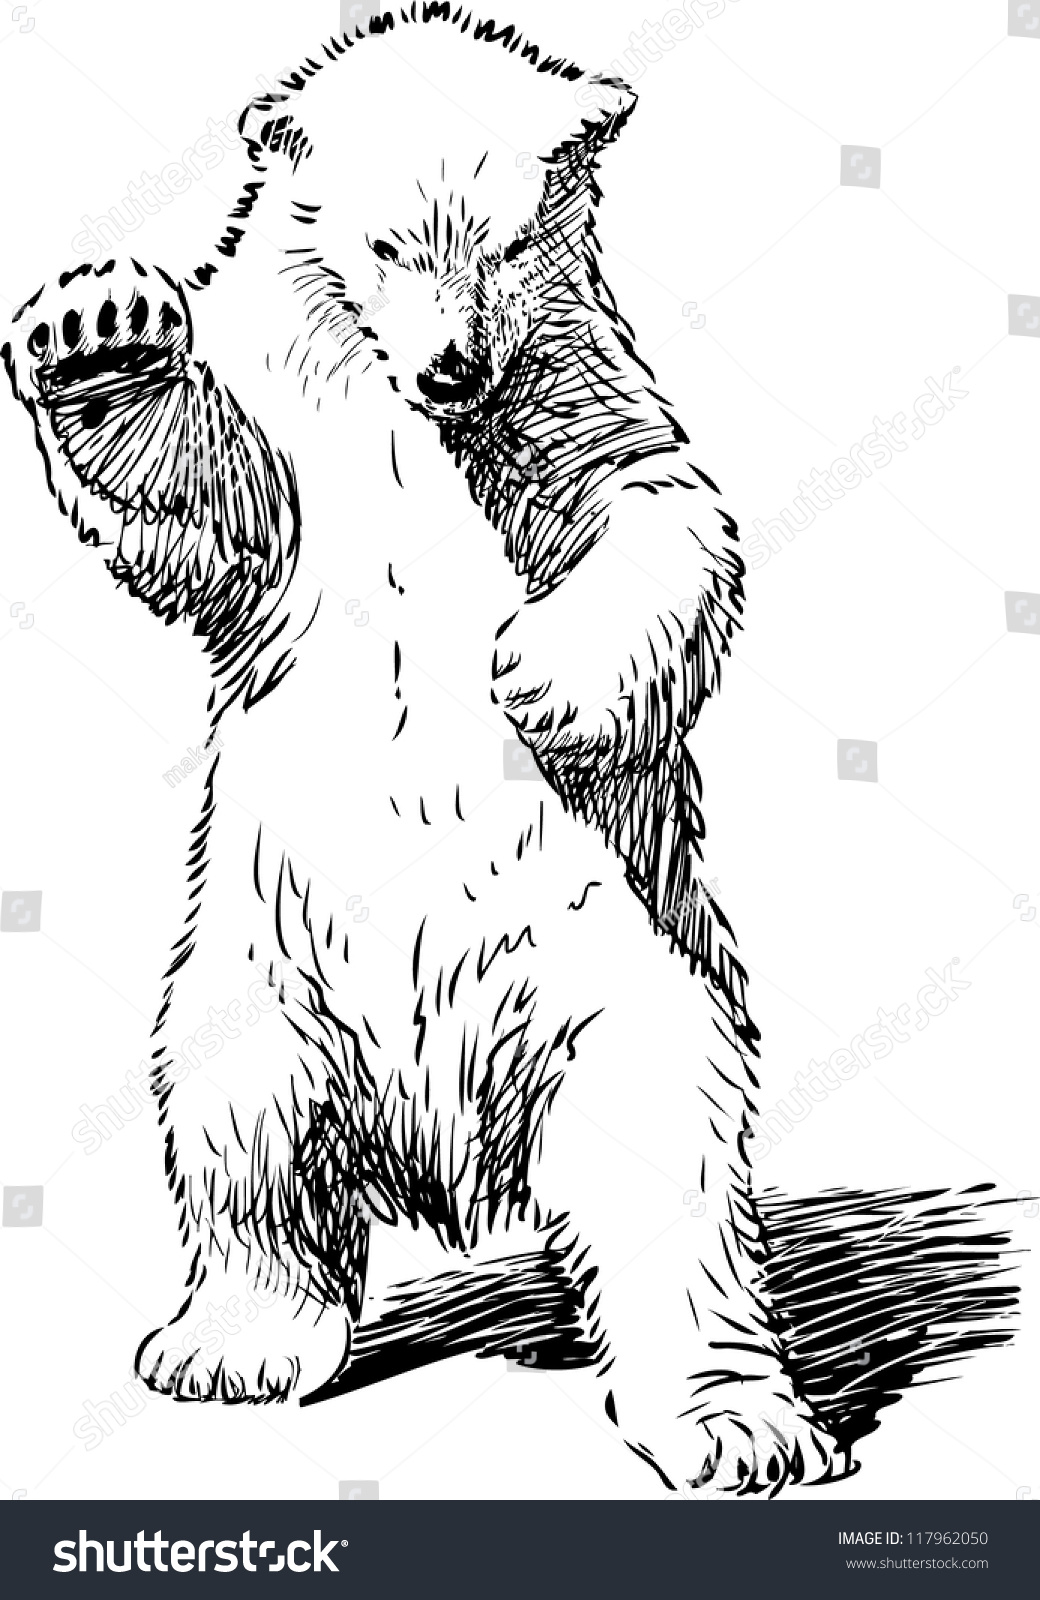 angry bear standing drawing - photo #40